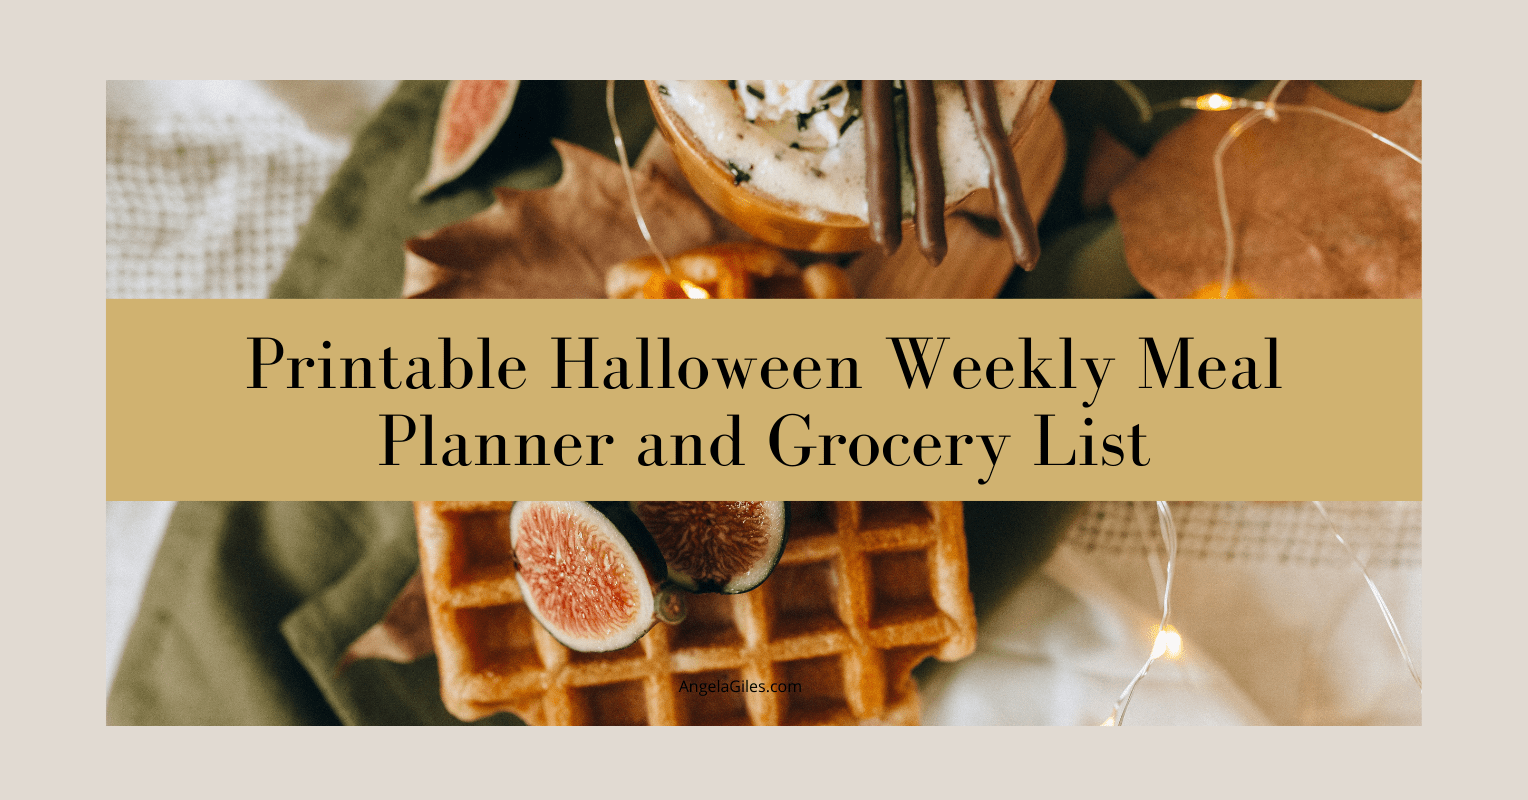 Printable Halloween Weekly Meal Planner and Grocery List